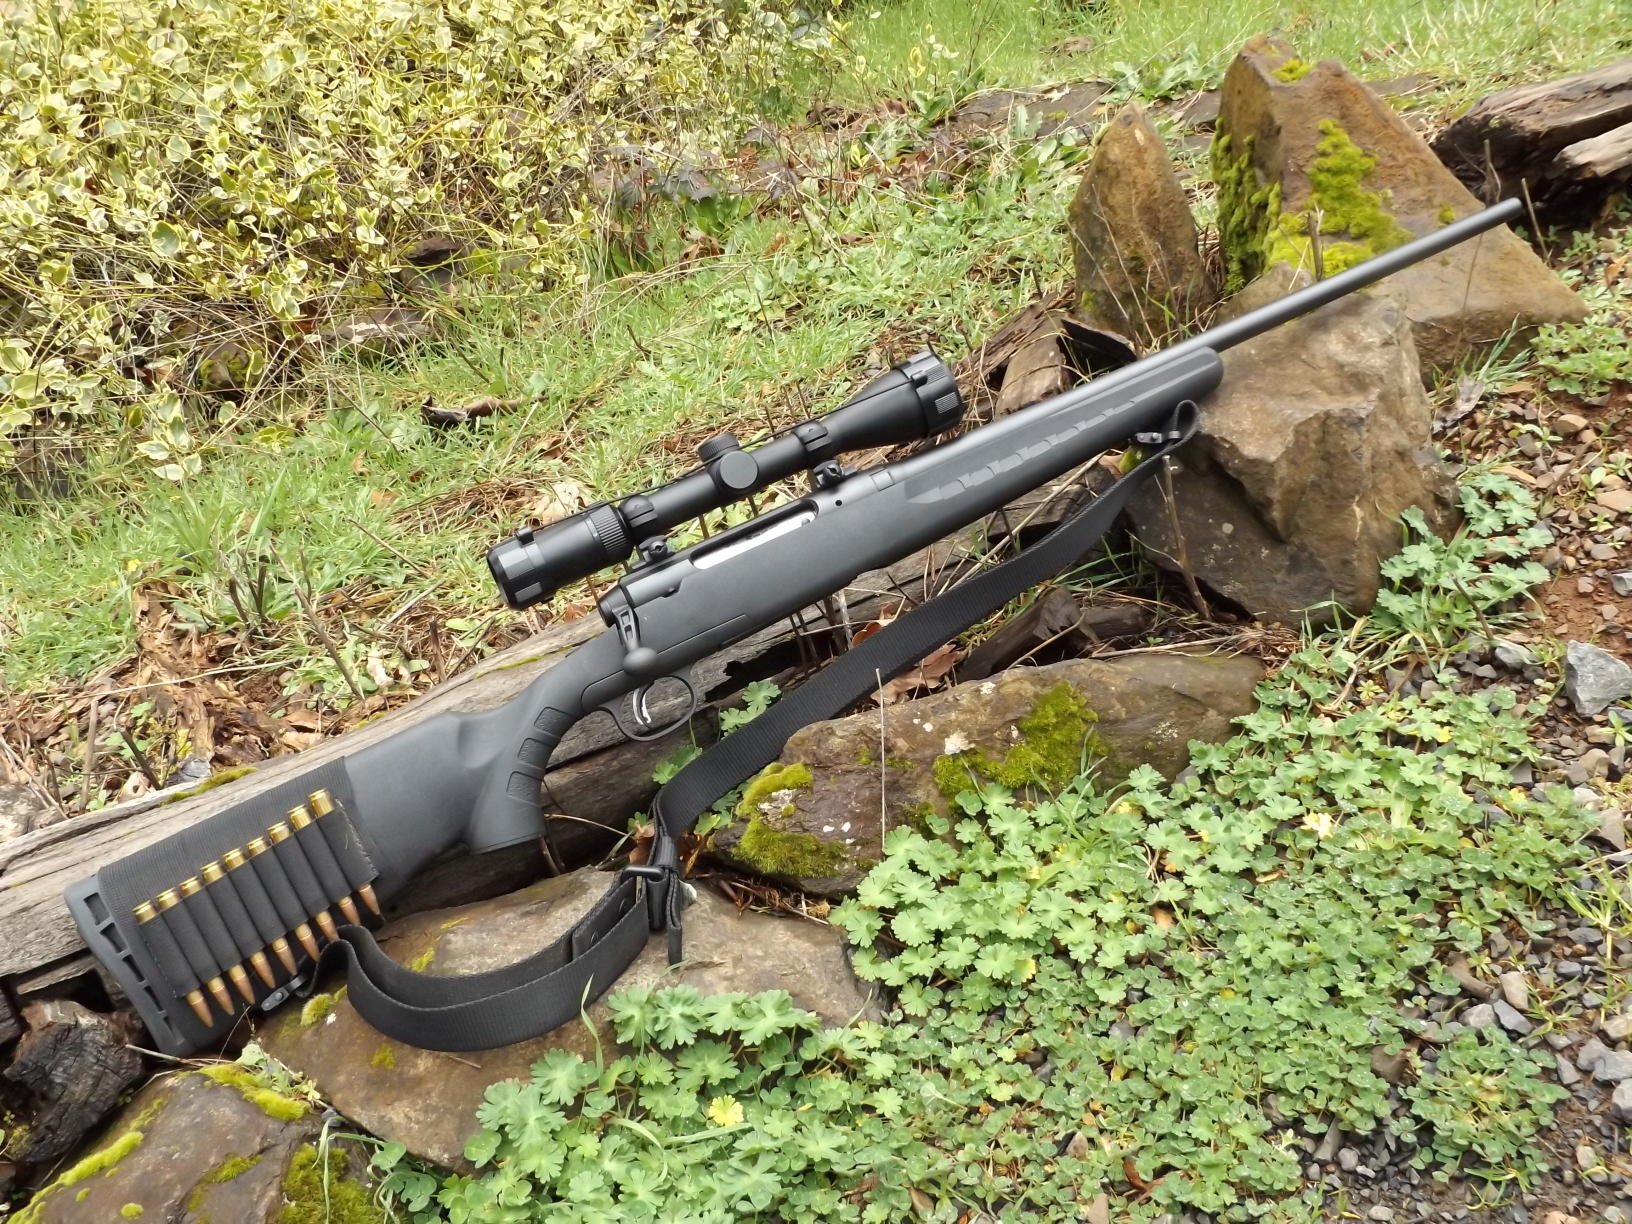 Letter Re: Comments on Savage Bolt Action Rifles